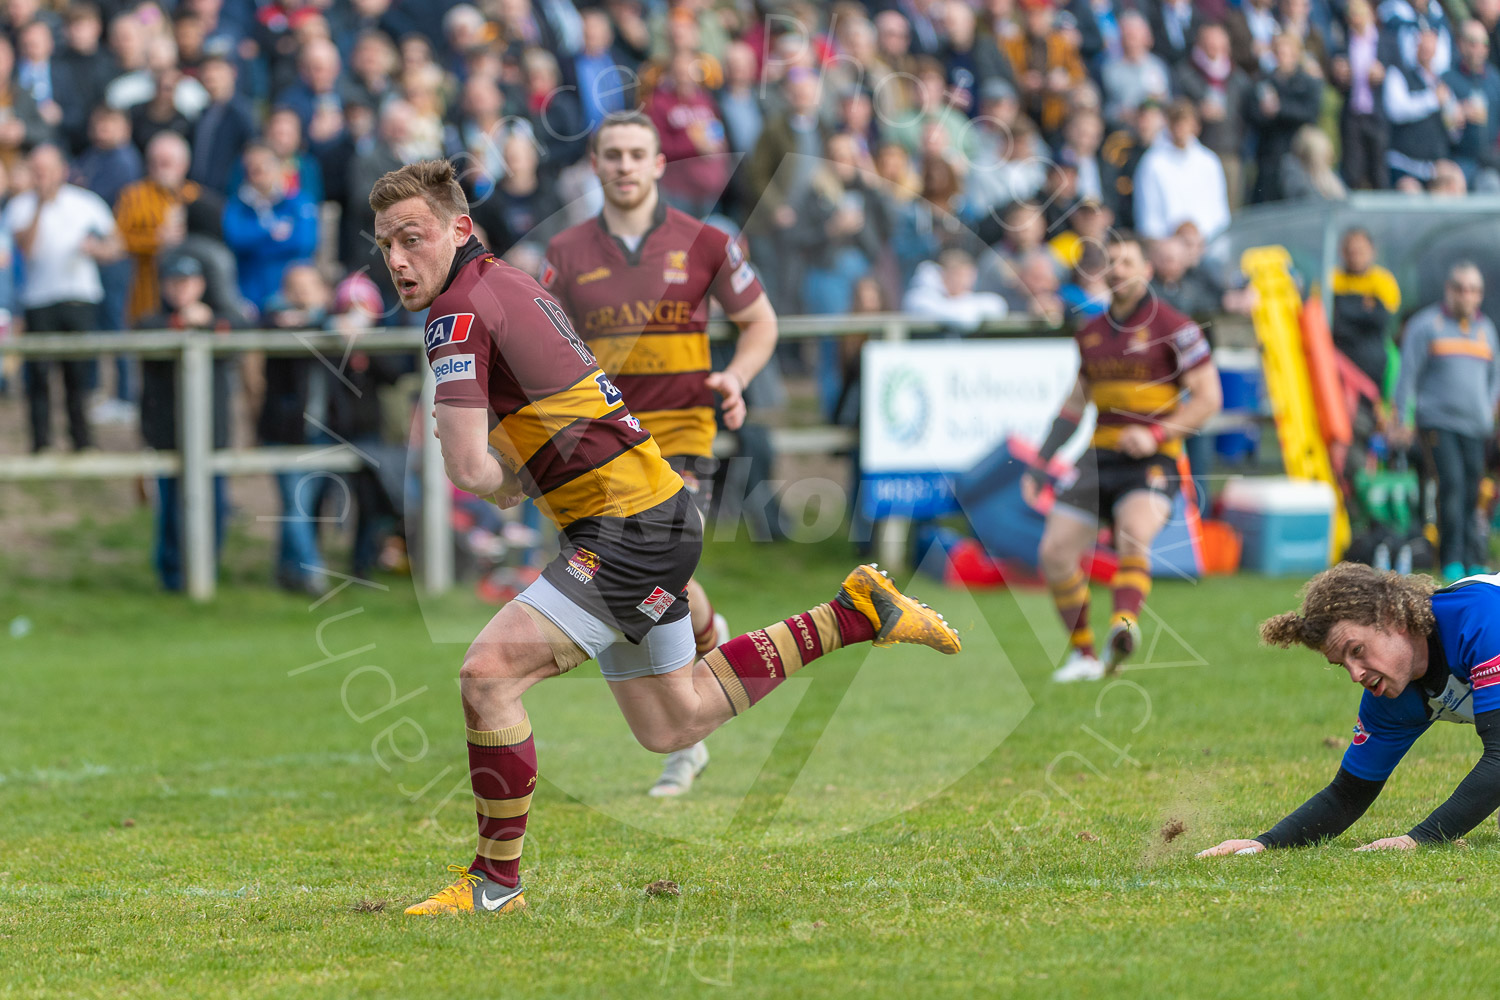 Josh Sharp  slipping through the defences and heading for the line.... (Photo: Iain Frankish, Actuance Photography)